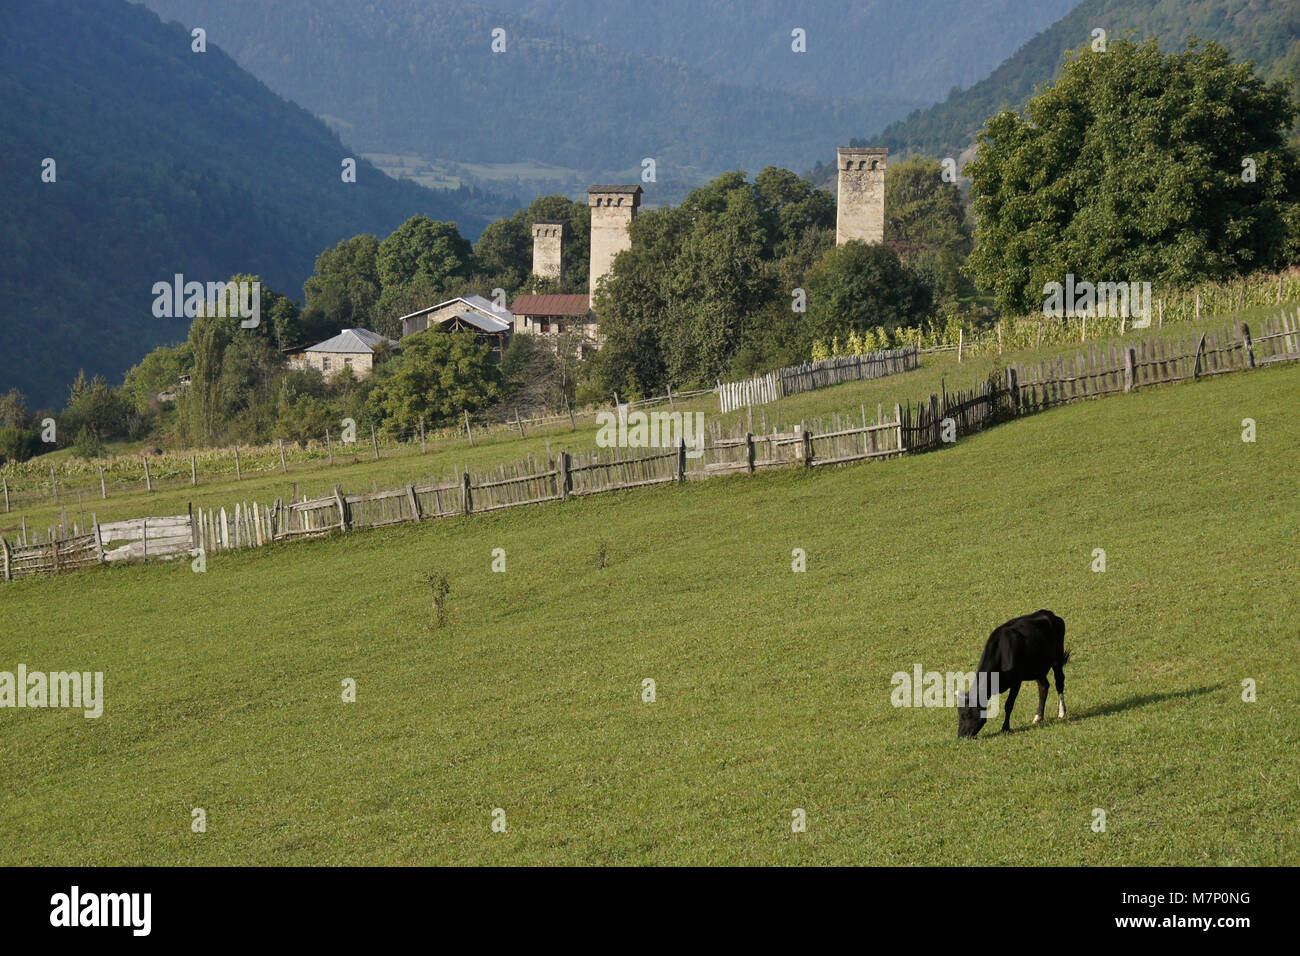 Historic tower houses stand amid more modern homes on a hillside in Mestia, Svaneti region of the Caucasus Mountains, - Stock Image